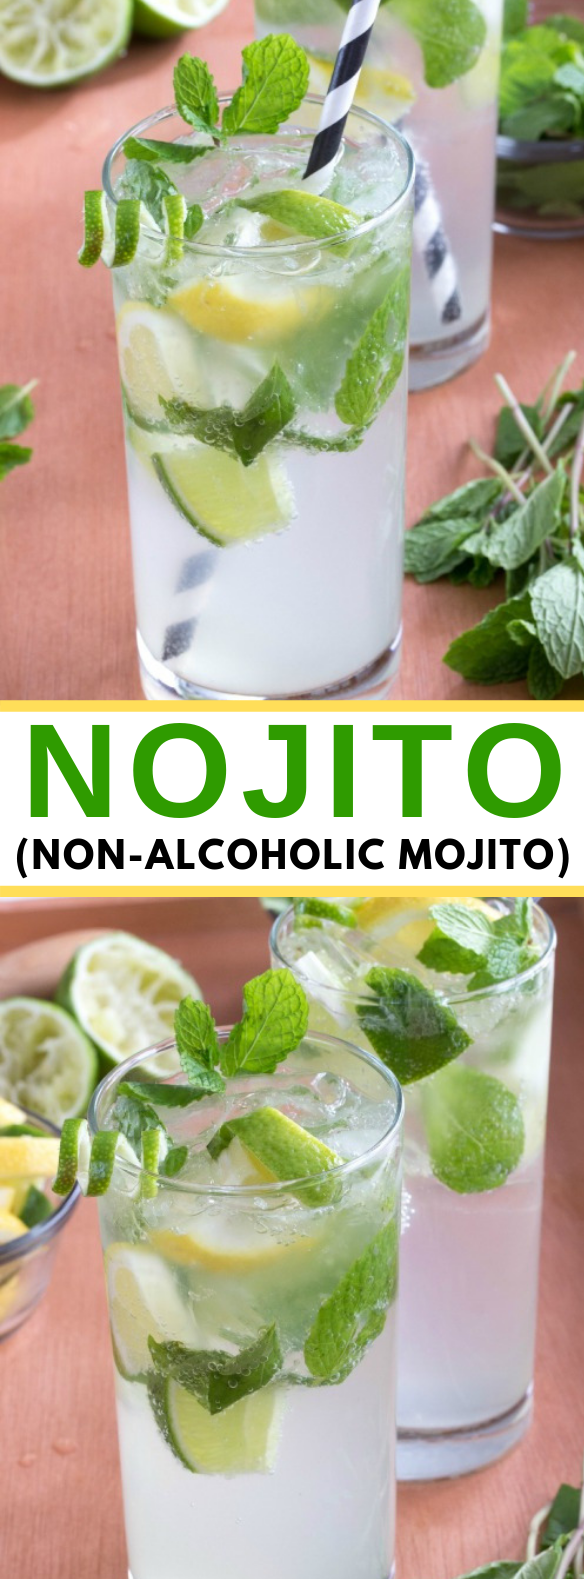 Nojito Recipe #cocktails #drinks